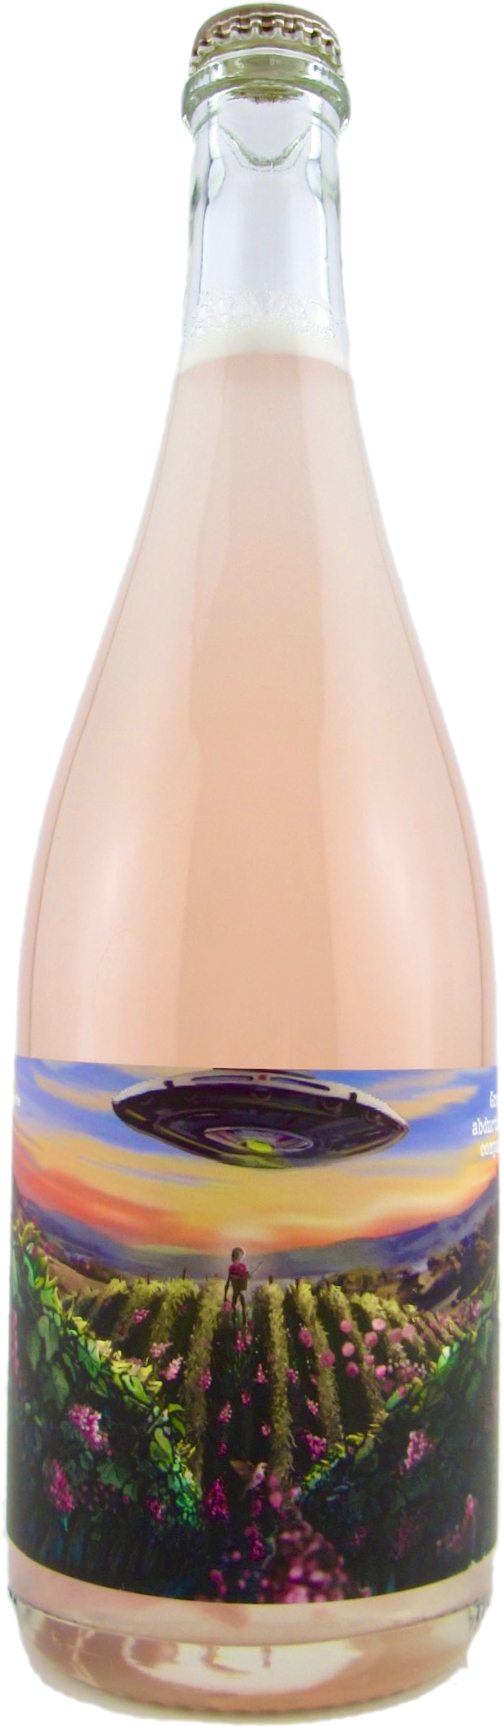 Grape Abduction Company - Piquette Rosé